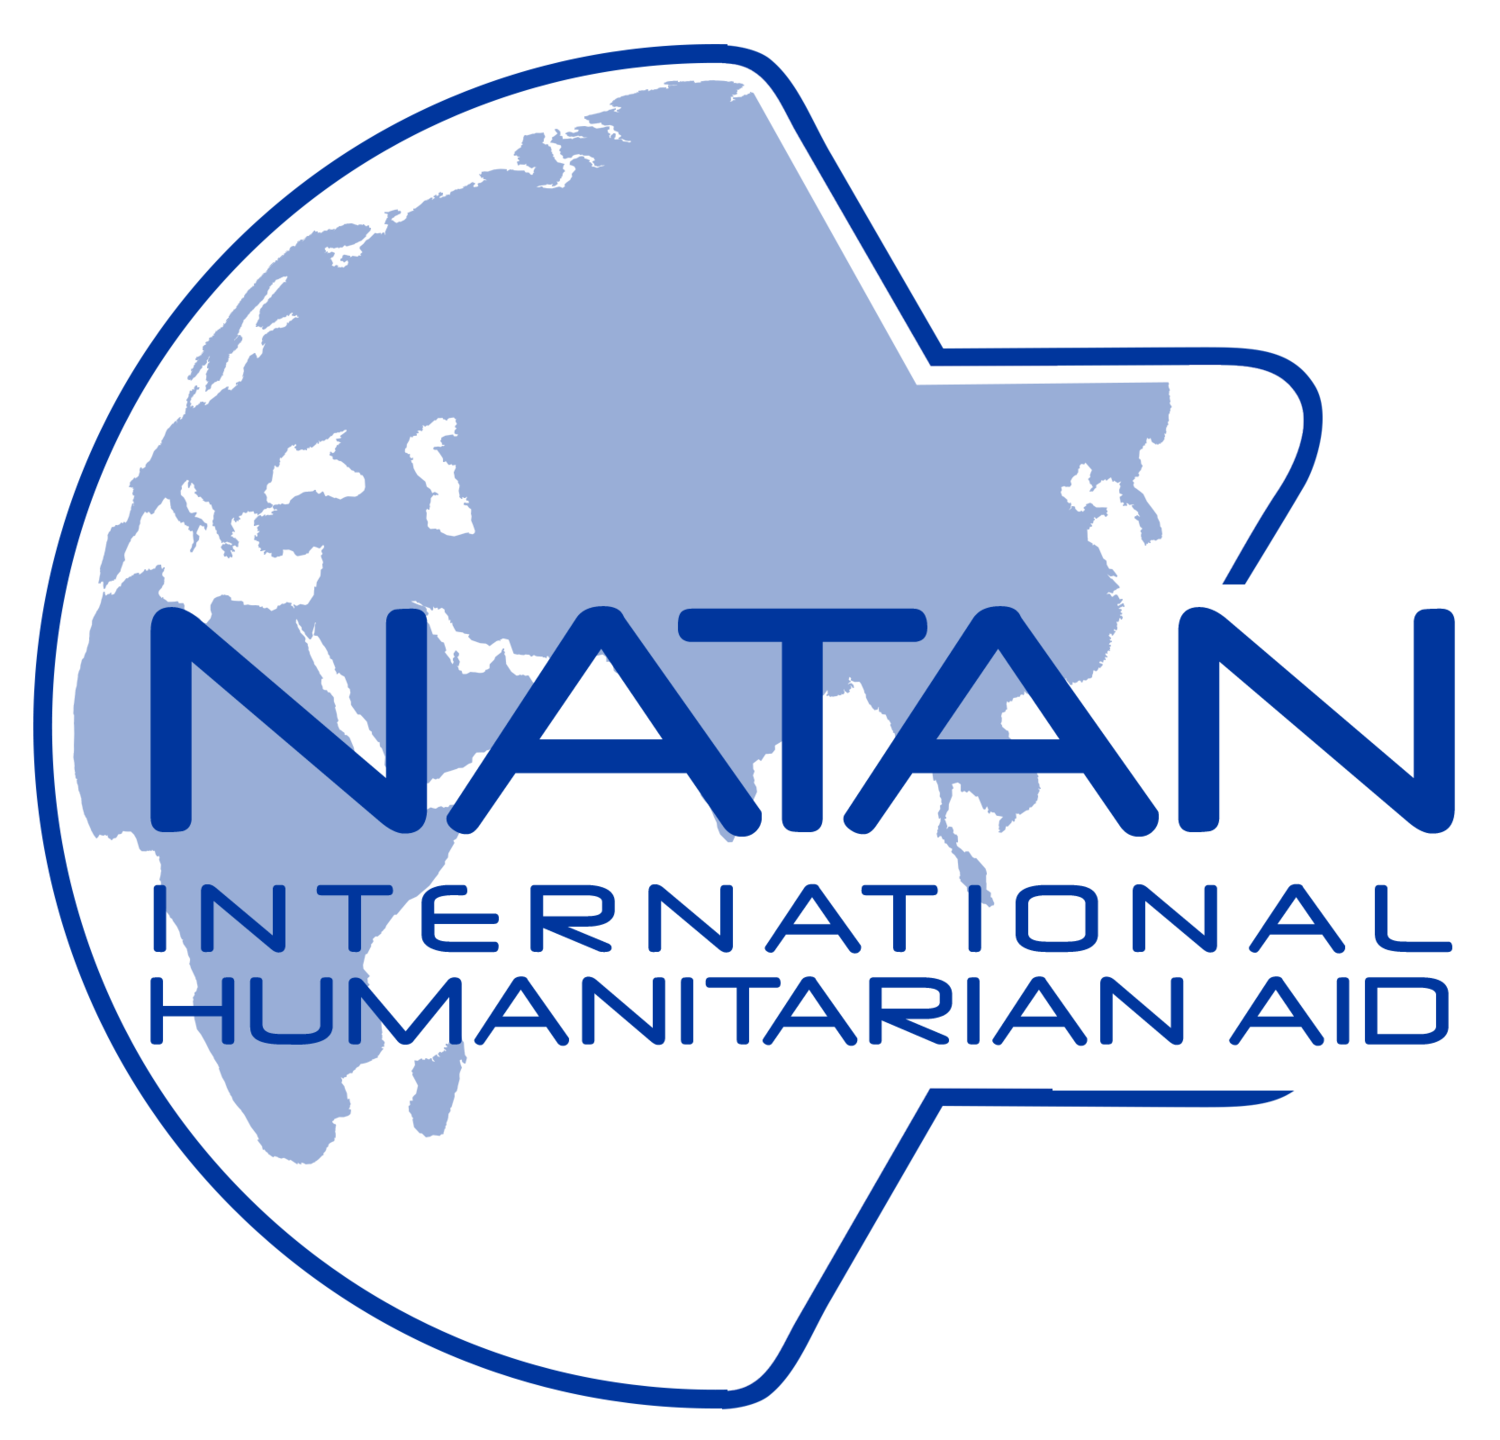 NATAN - International Humanitarian Aid